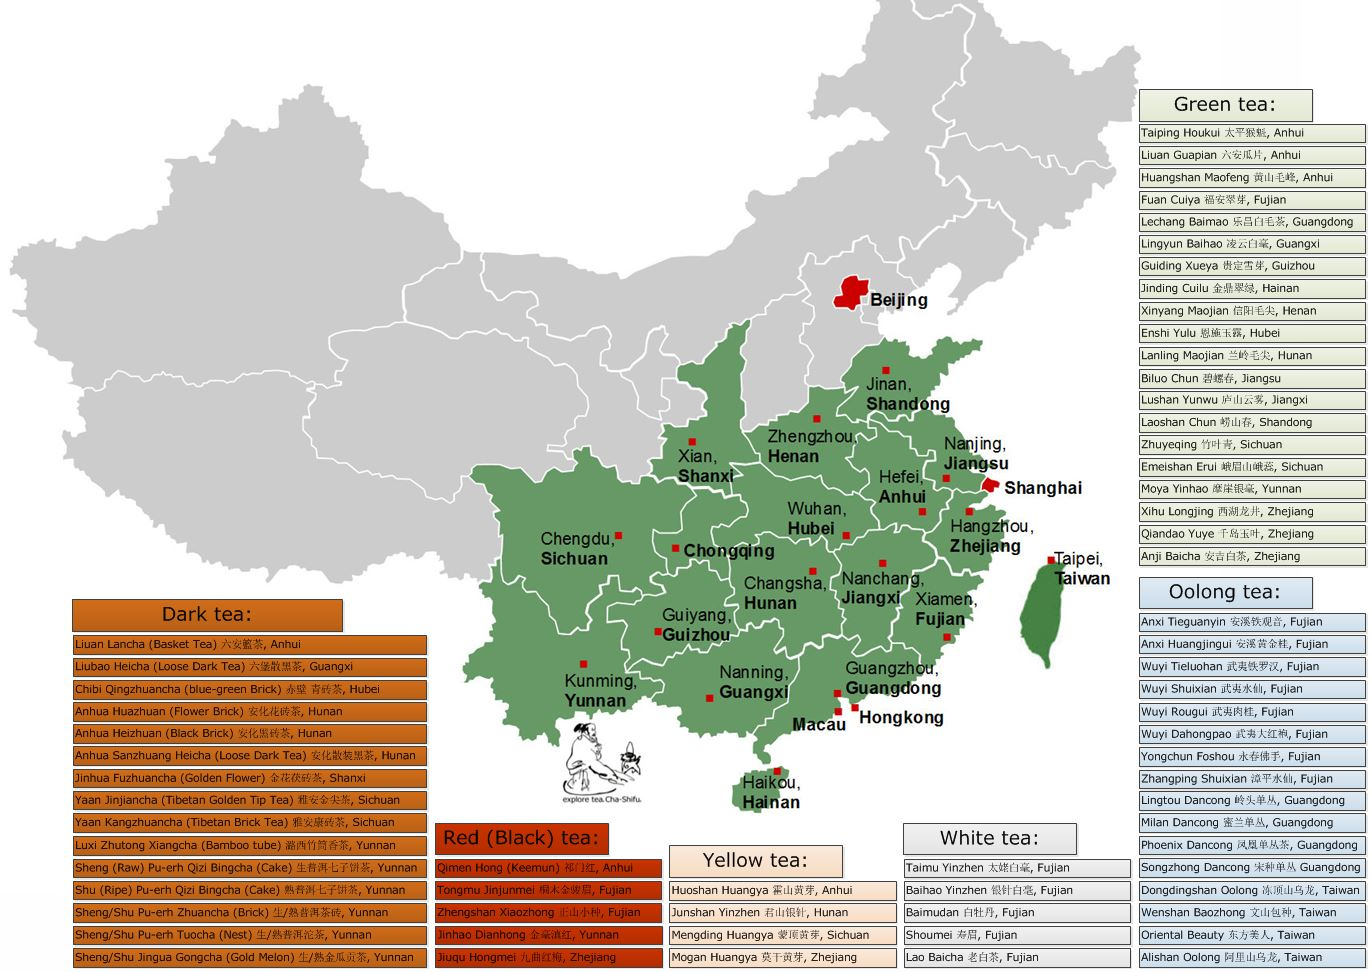 map tea plant Camellia sinensis found in Southwest China, Yunnan province and its neighboring regions of Northeast Myanmar as well as Indias Assam region, Camellia sinens.jpg